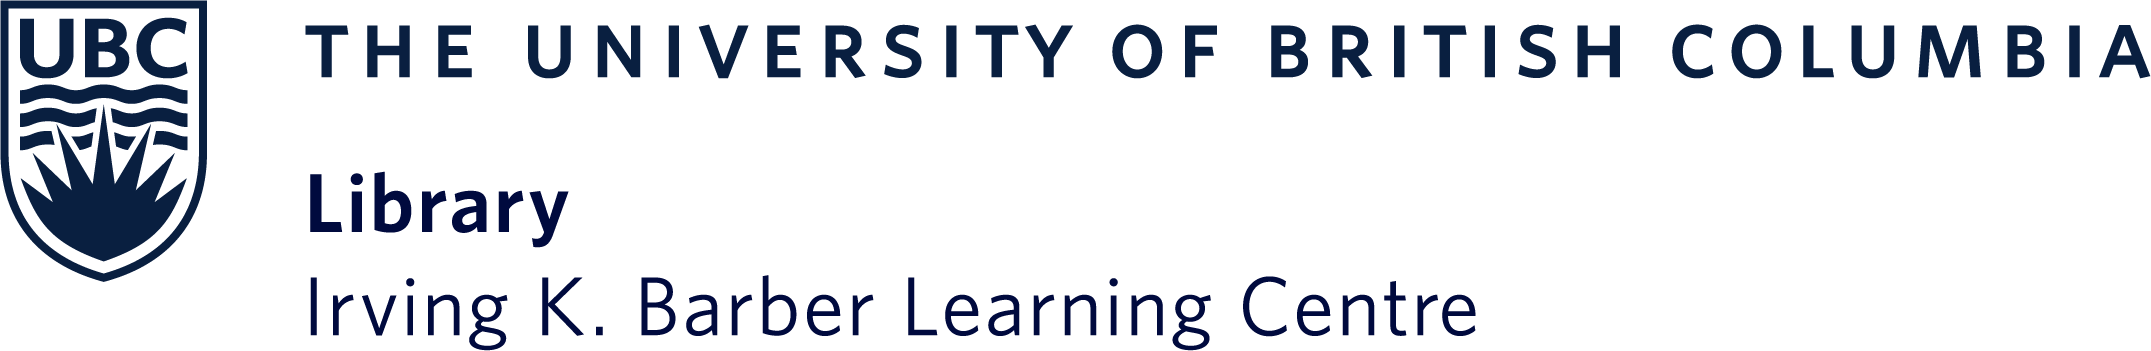 Irving K. Barber Learning Centre logo with UBC crest in dark blue